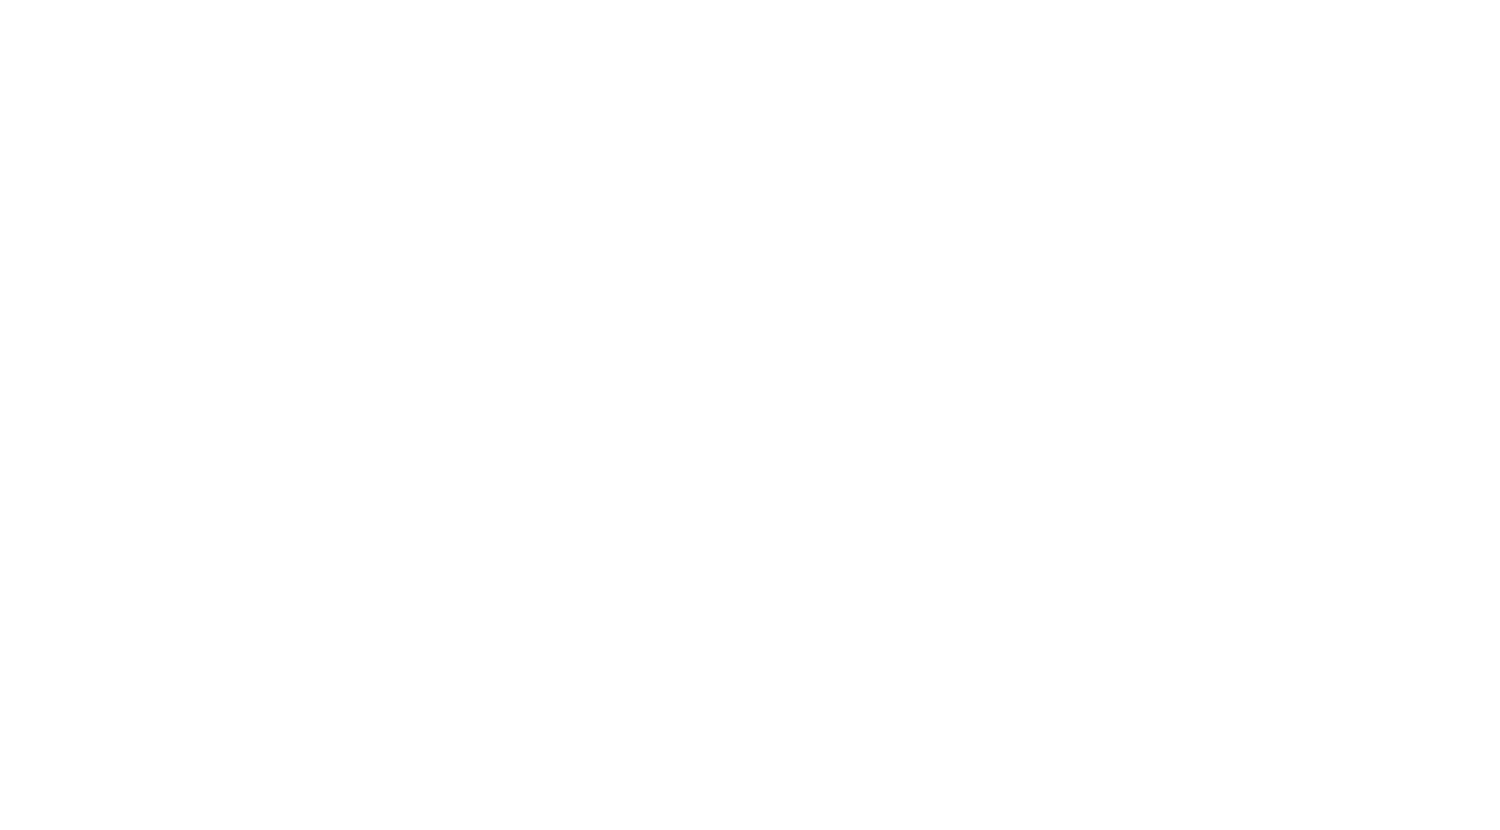 Light Madrid - Church Plant in Madrid, Spain